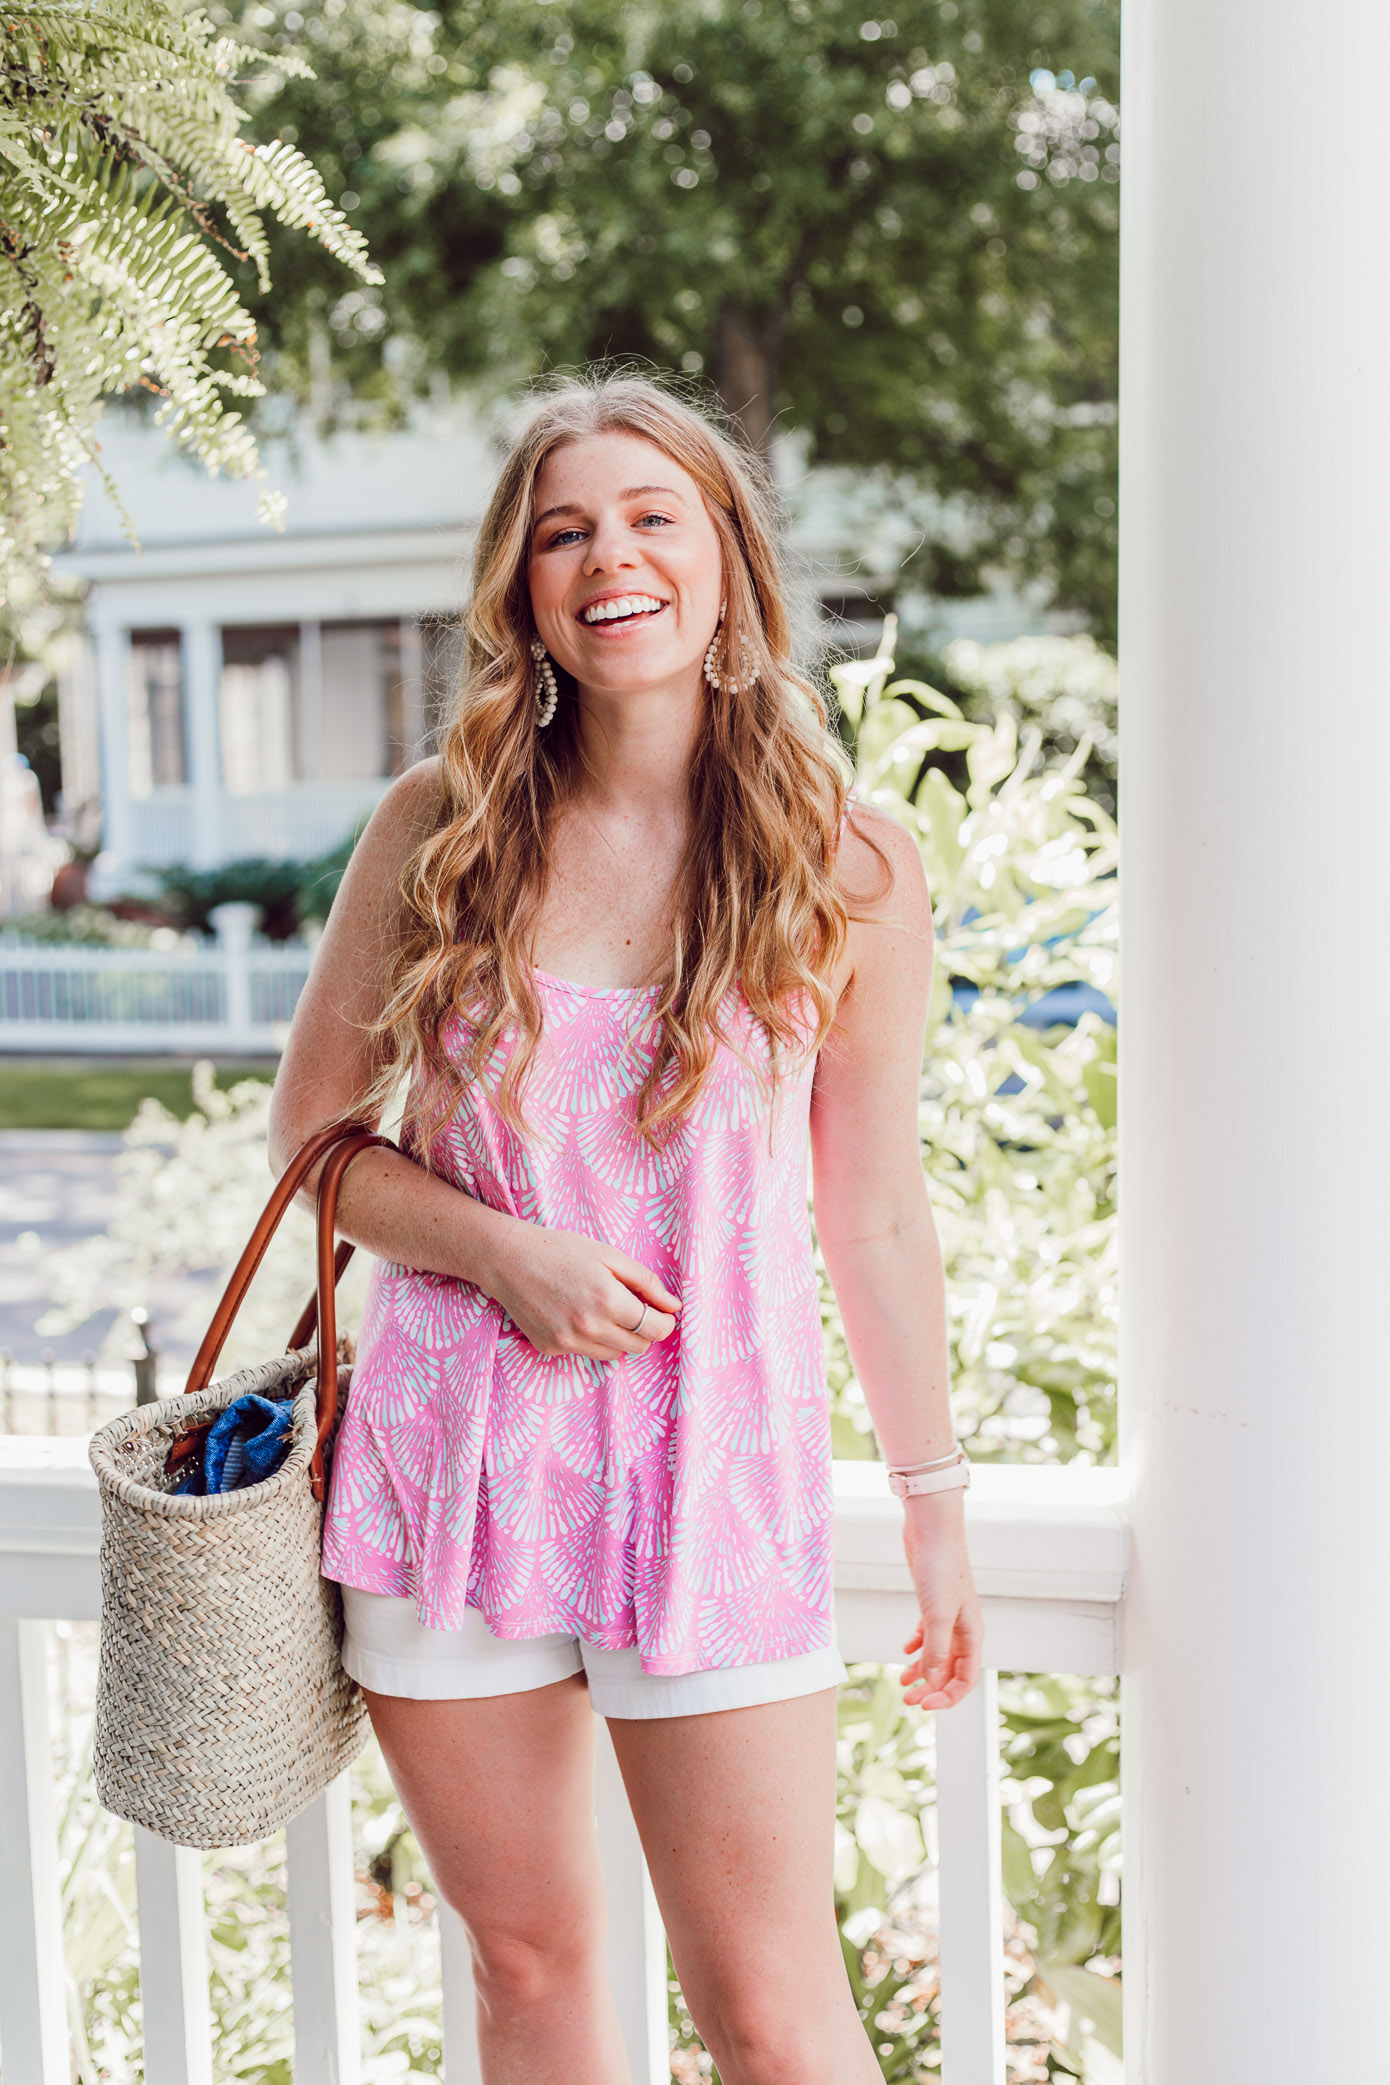 Summer 2018 Bucket List | Casual Summer Style, White Shorts for Summer | Louella Reese Life & Style Blog